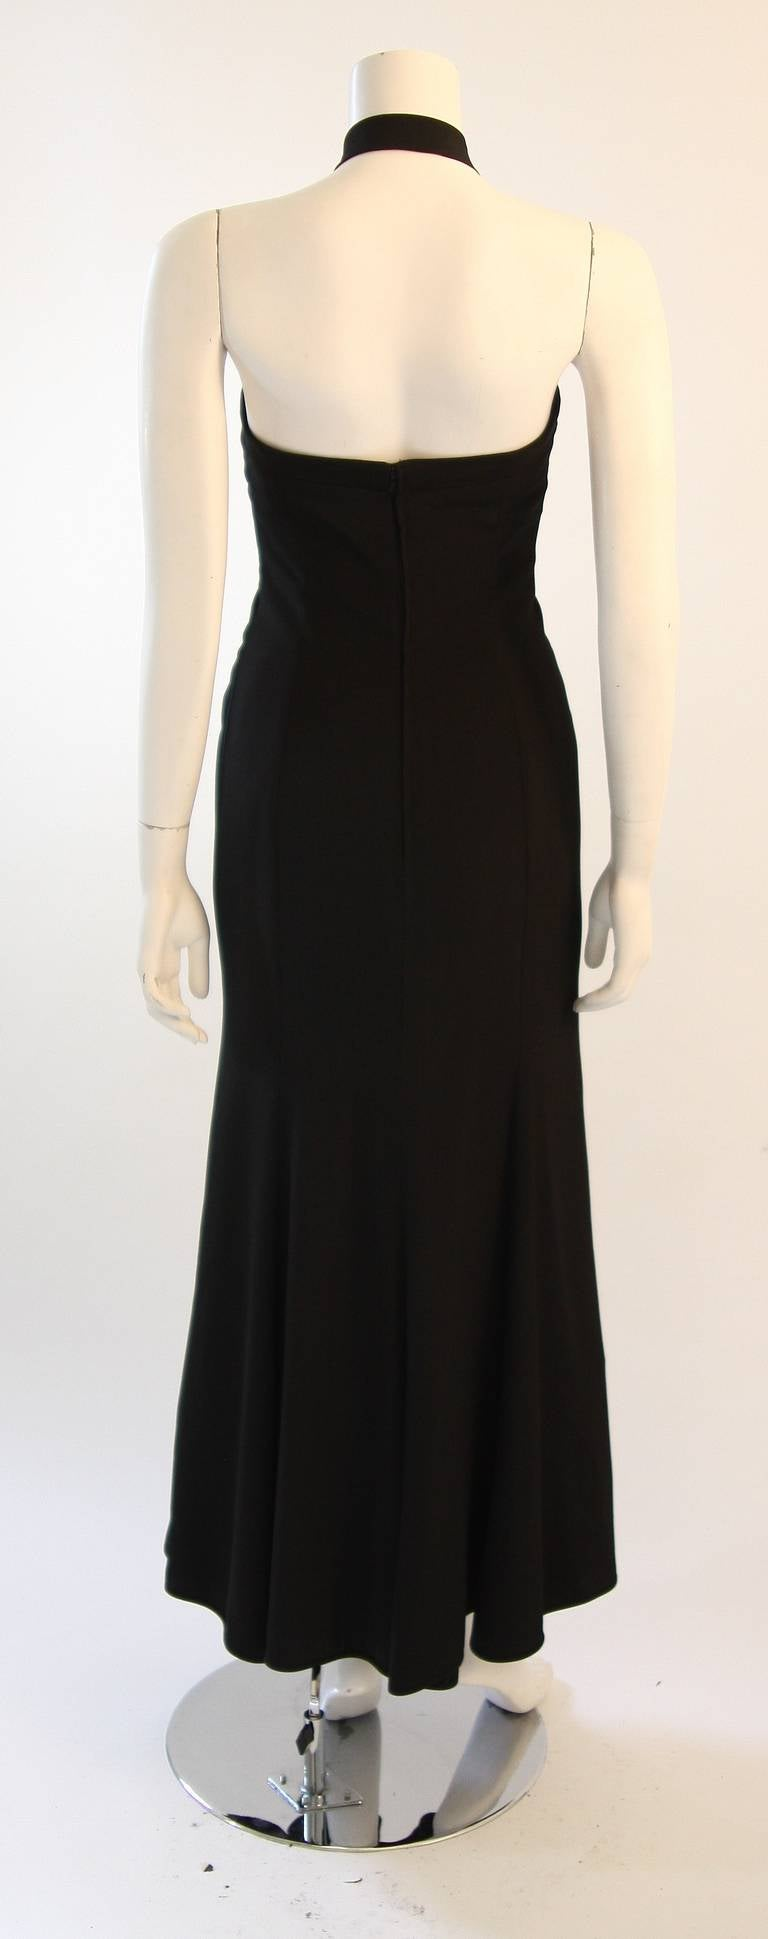 Emanuel Ungaro Evening Gown with Halter and Bow Size 6 For Sale 3